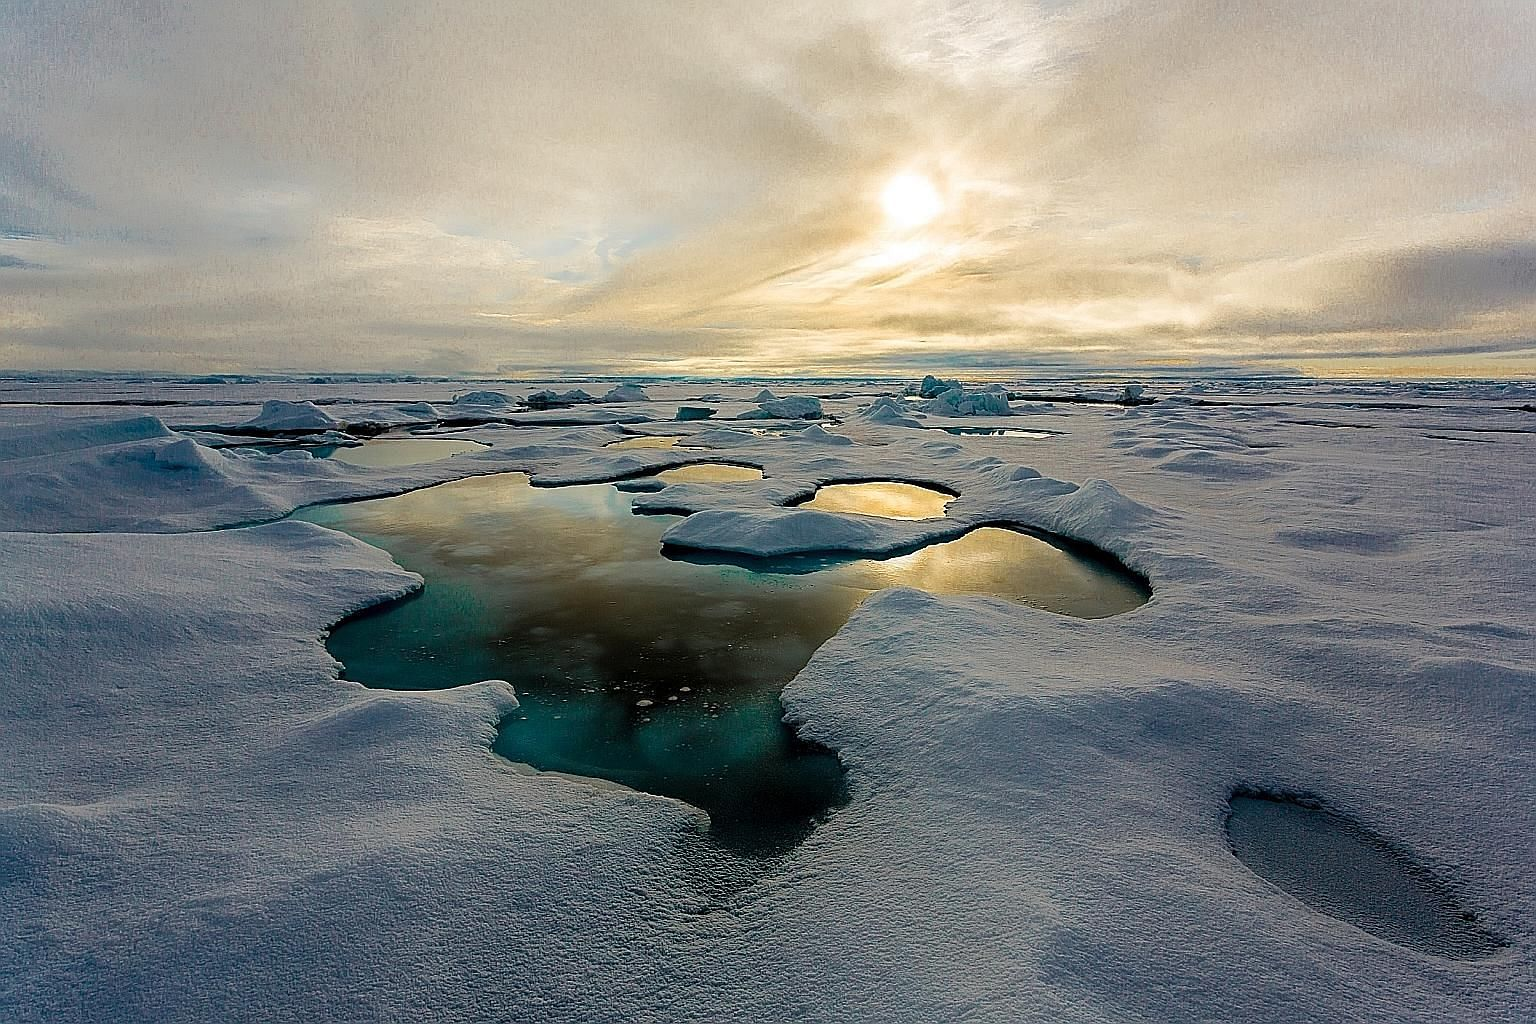 Ponds of melt water on sea ice in the Central Arctic region.